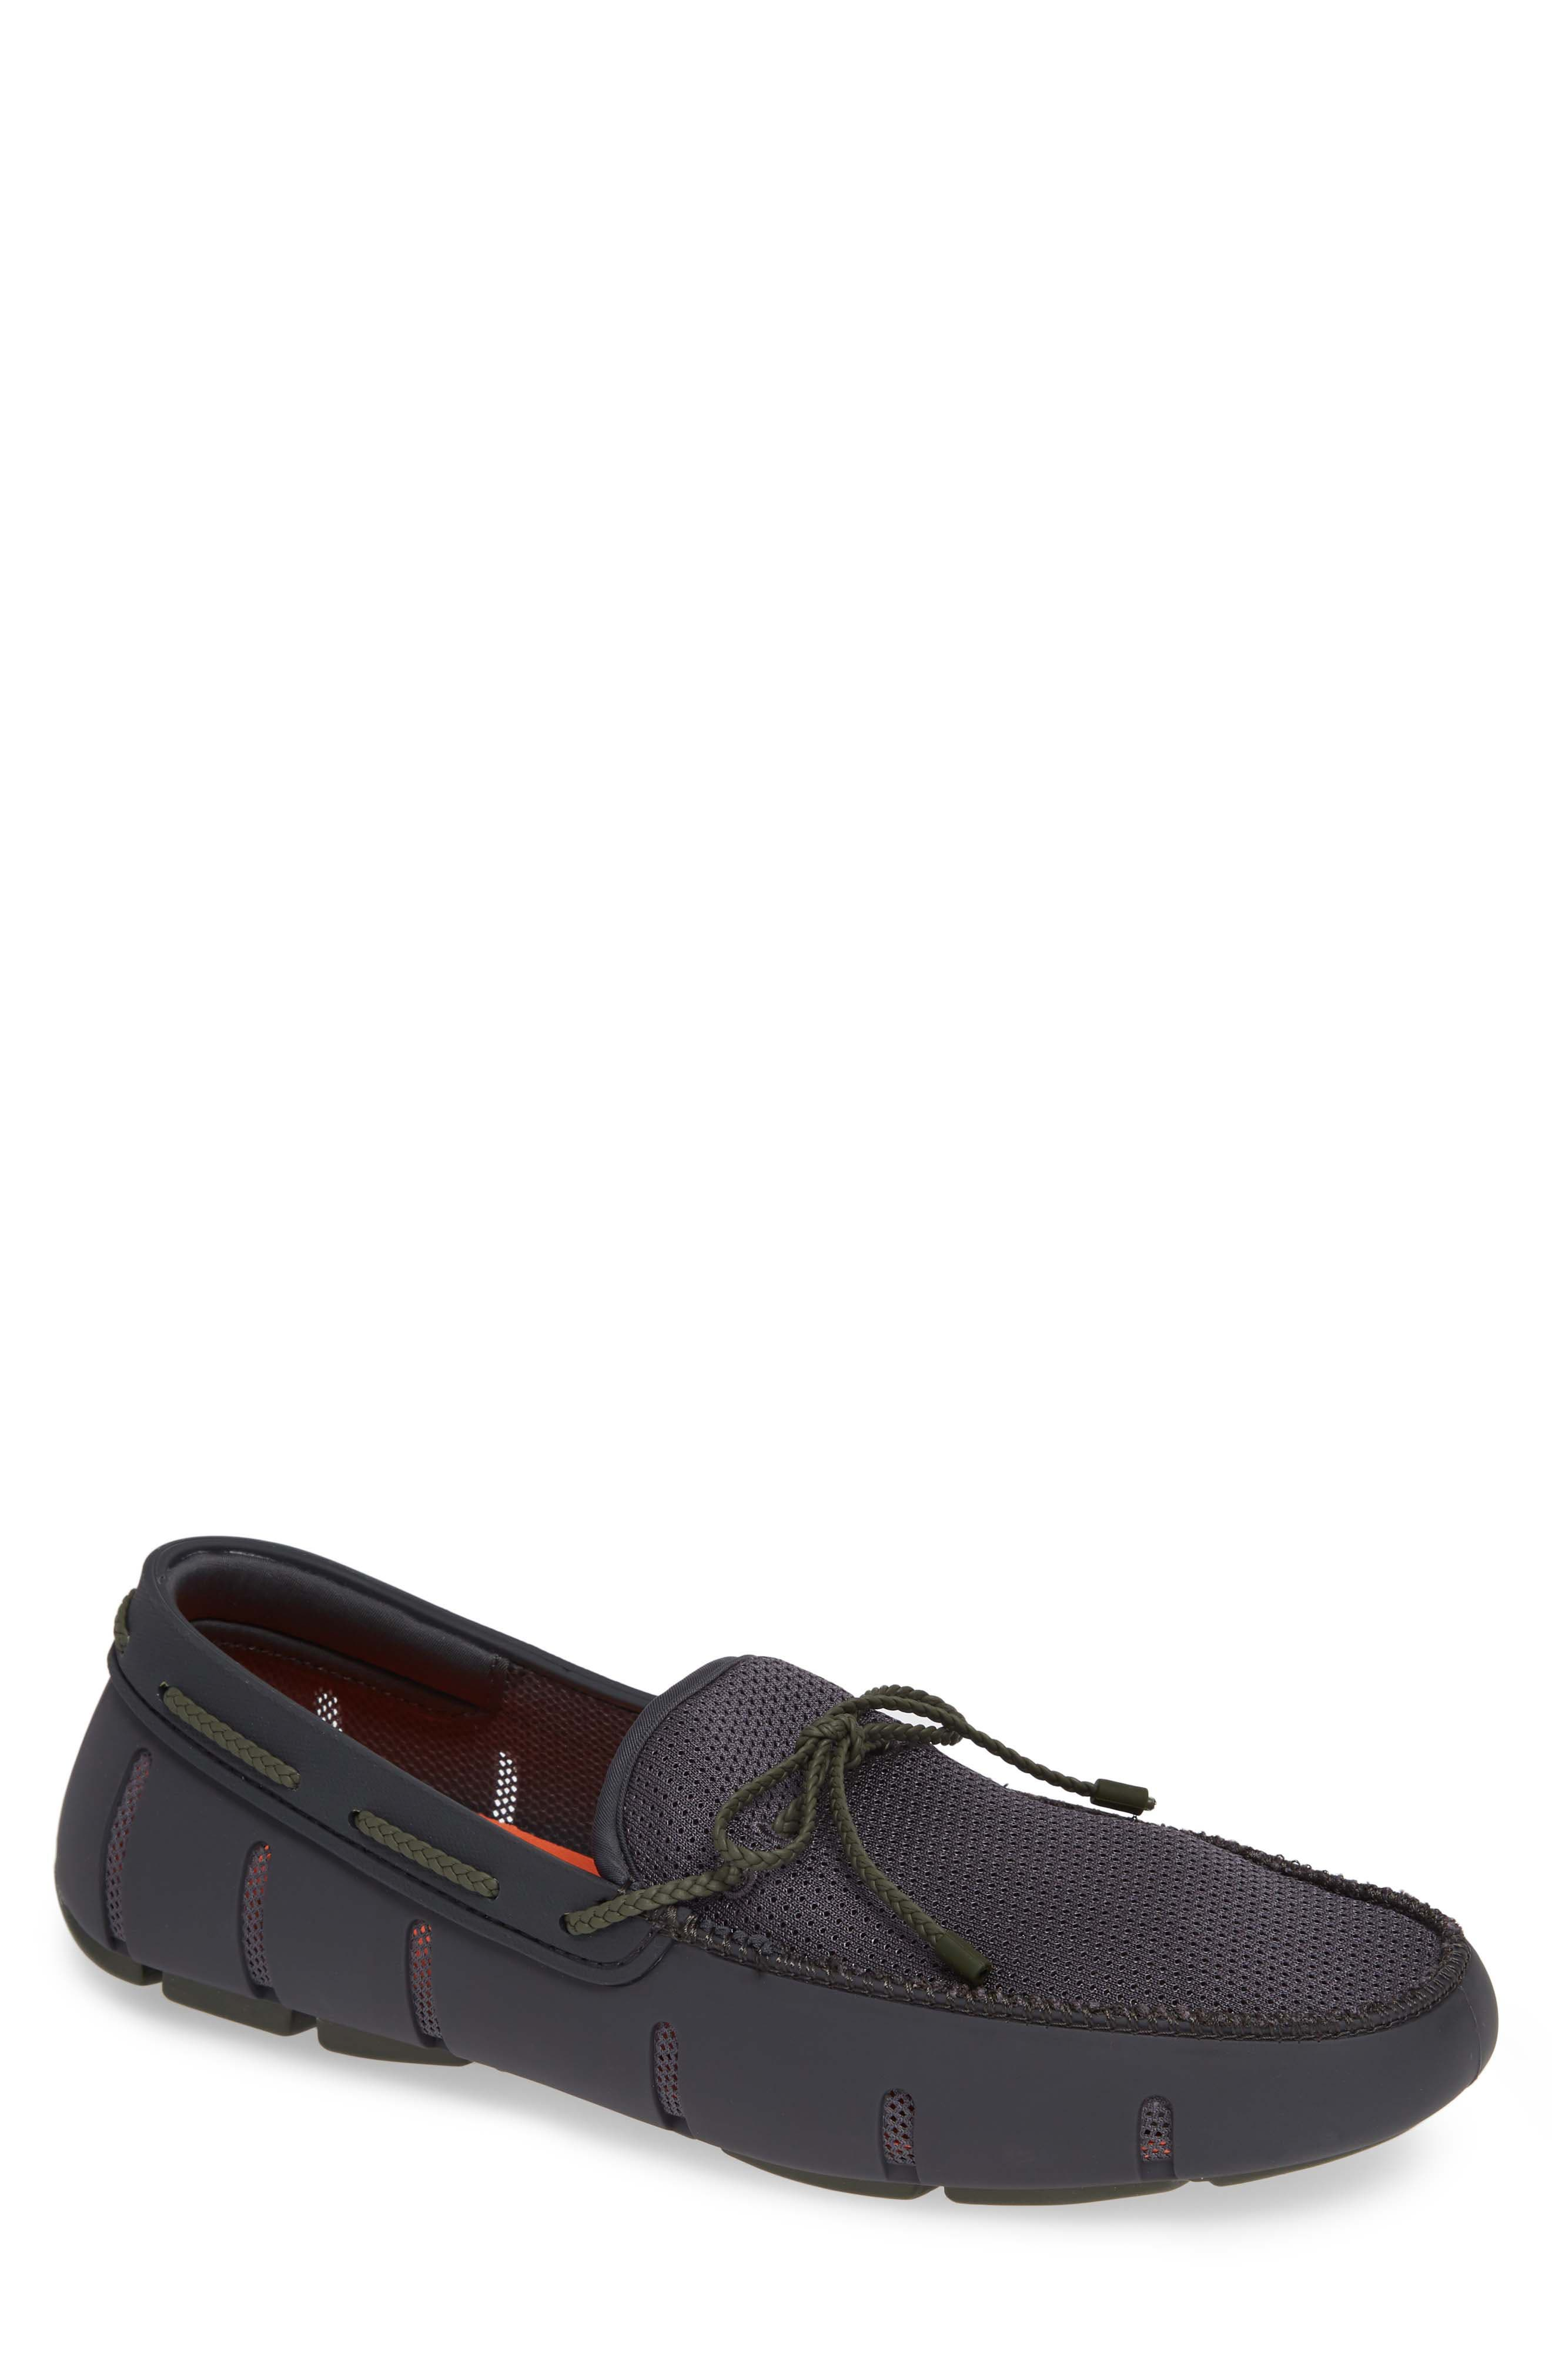 Lace Loafer,                         Main,                         color, DARK GRAY/ OLIVE